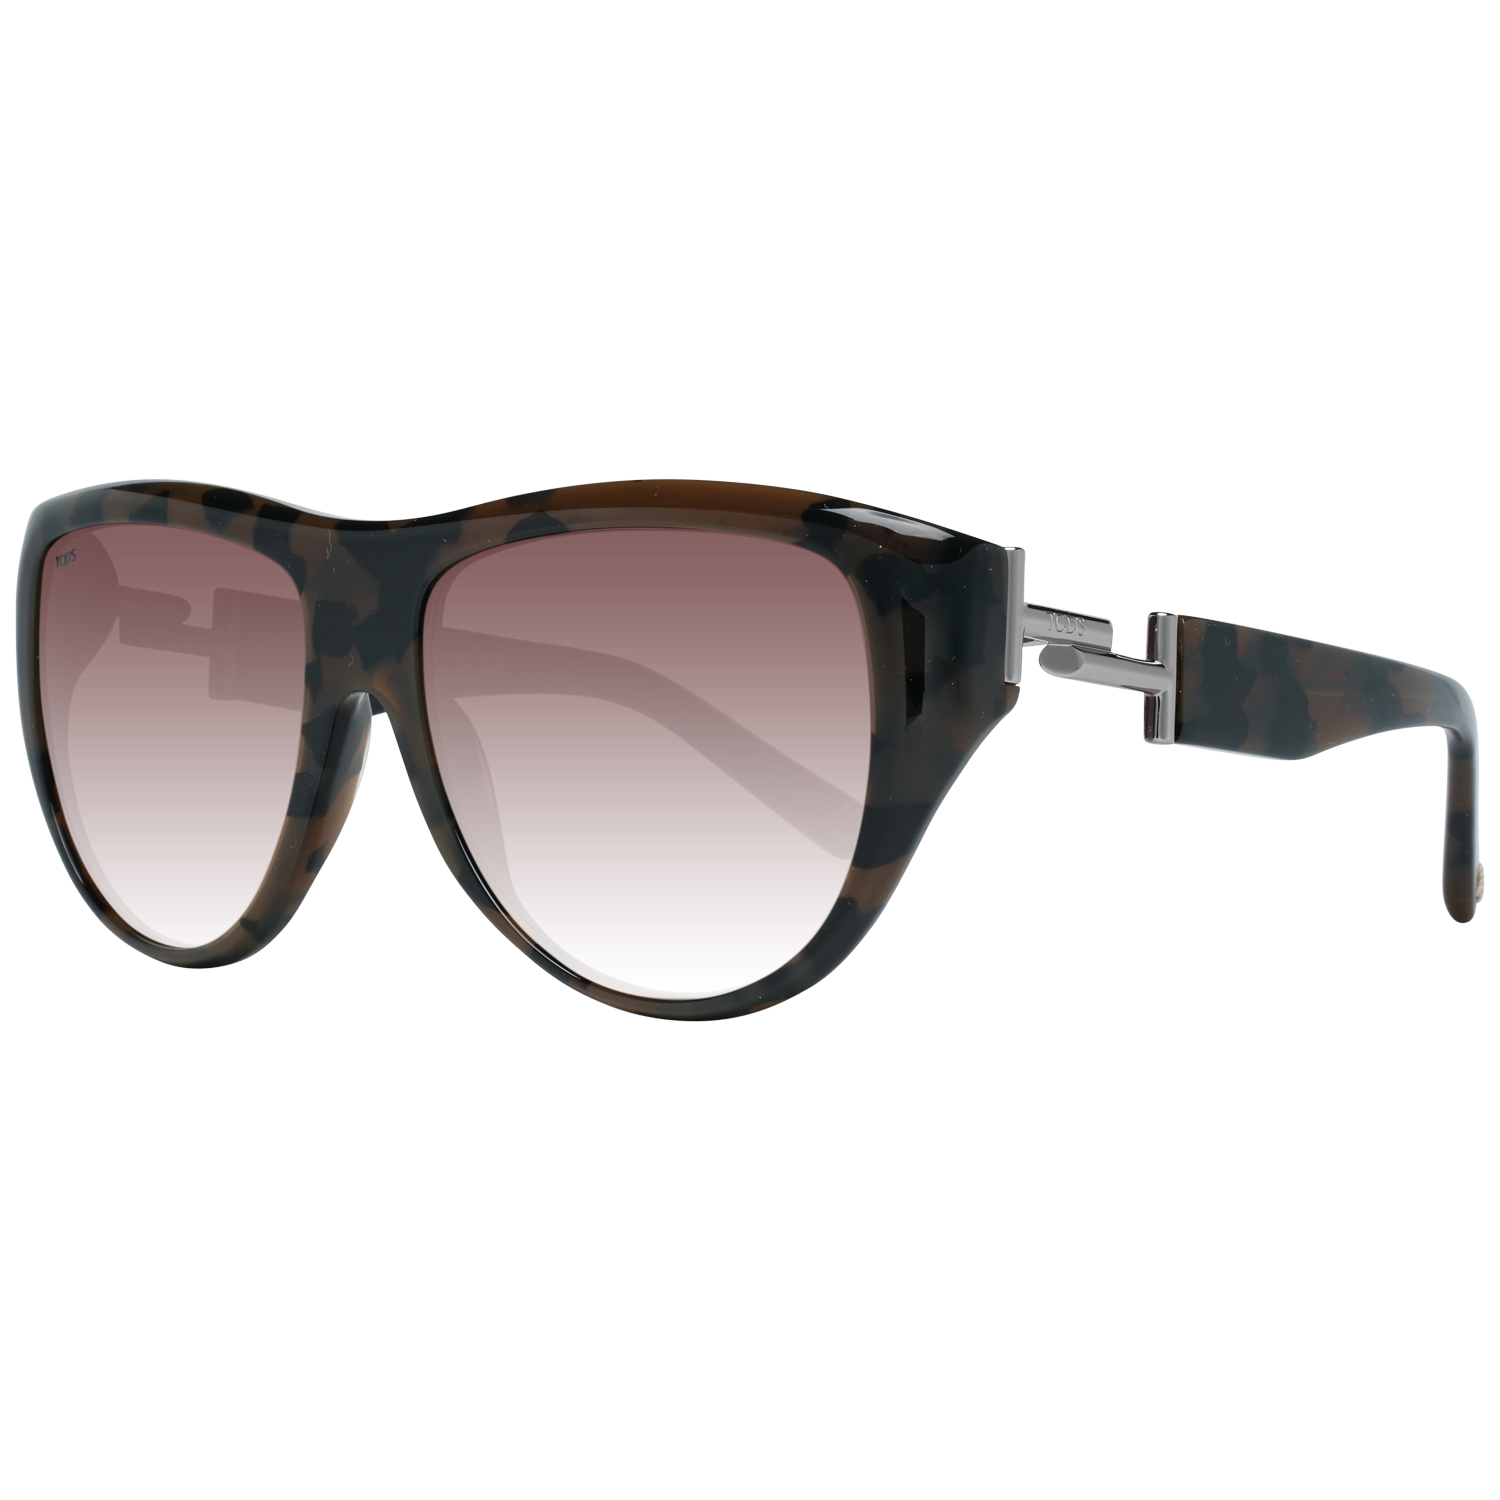 Tods Sunglasses TO0226 56F 56 Women Brown